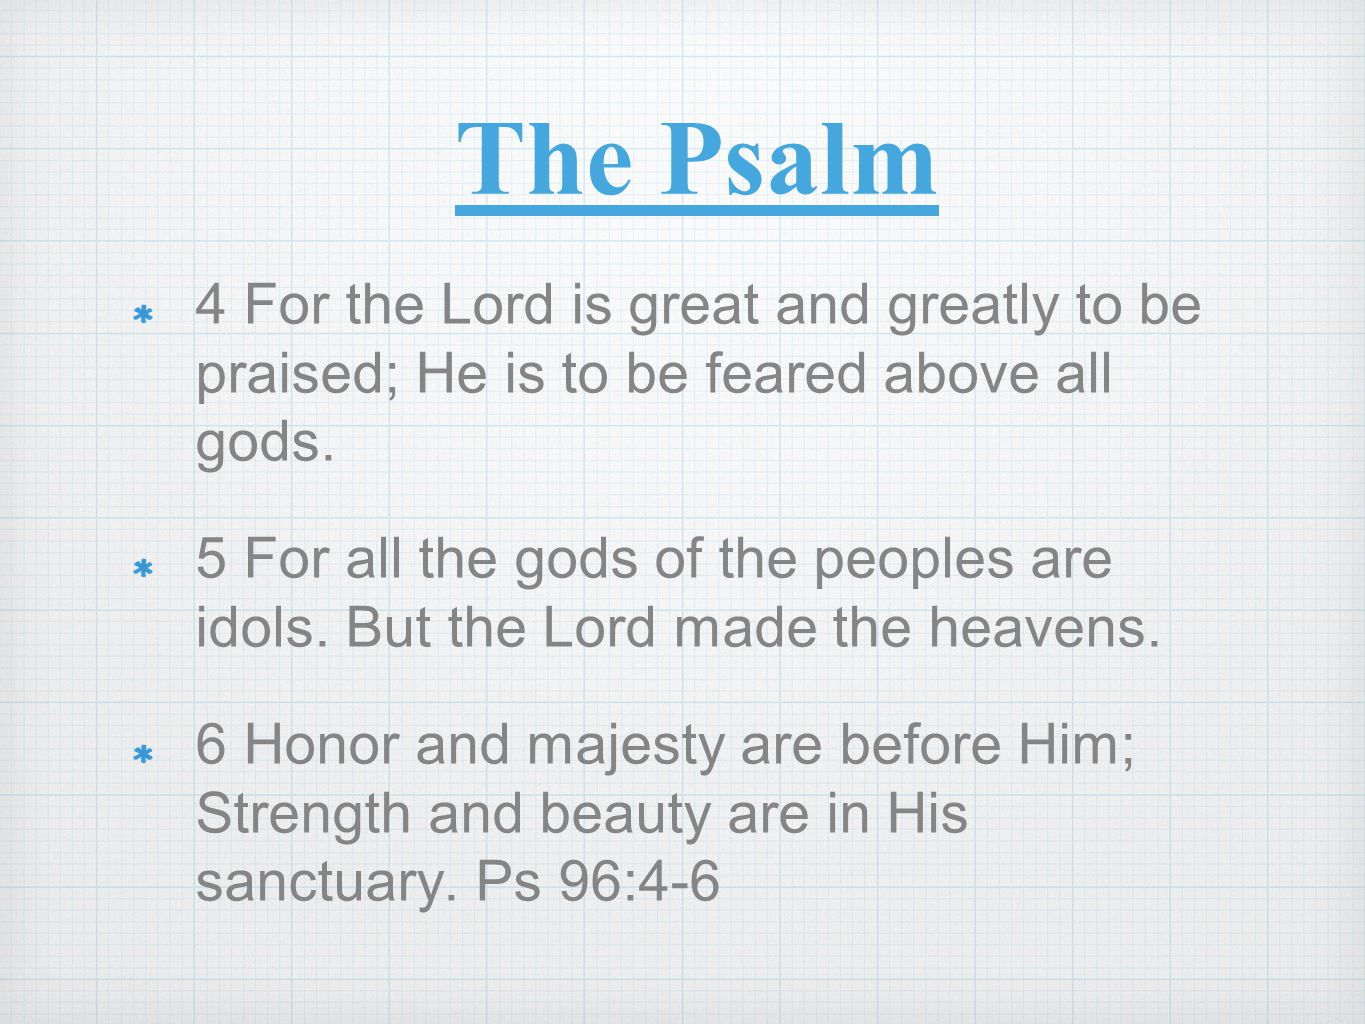 The Psalm 4 For the Lord is great and greatly to be praised; He is to be feared above all gods.